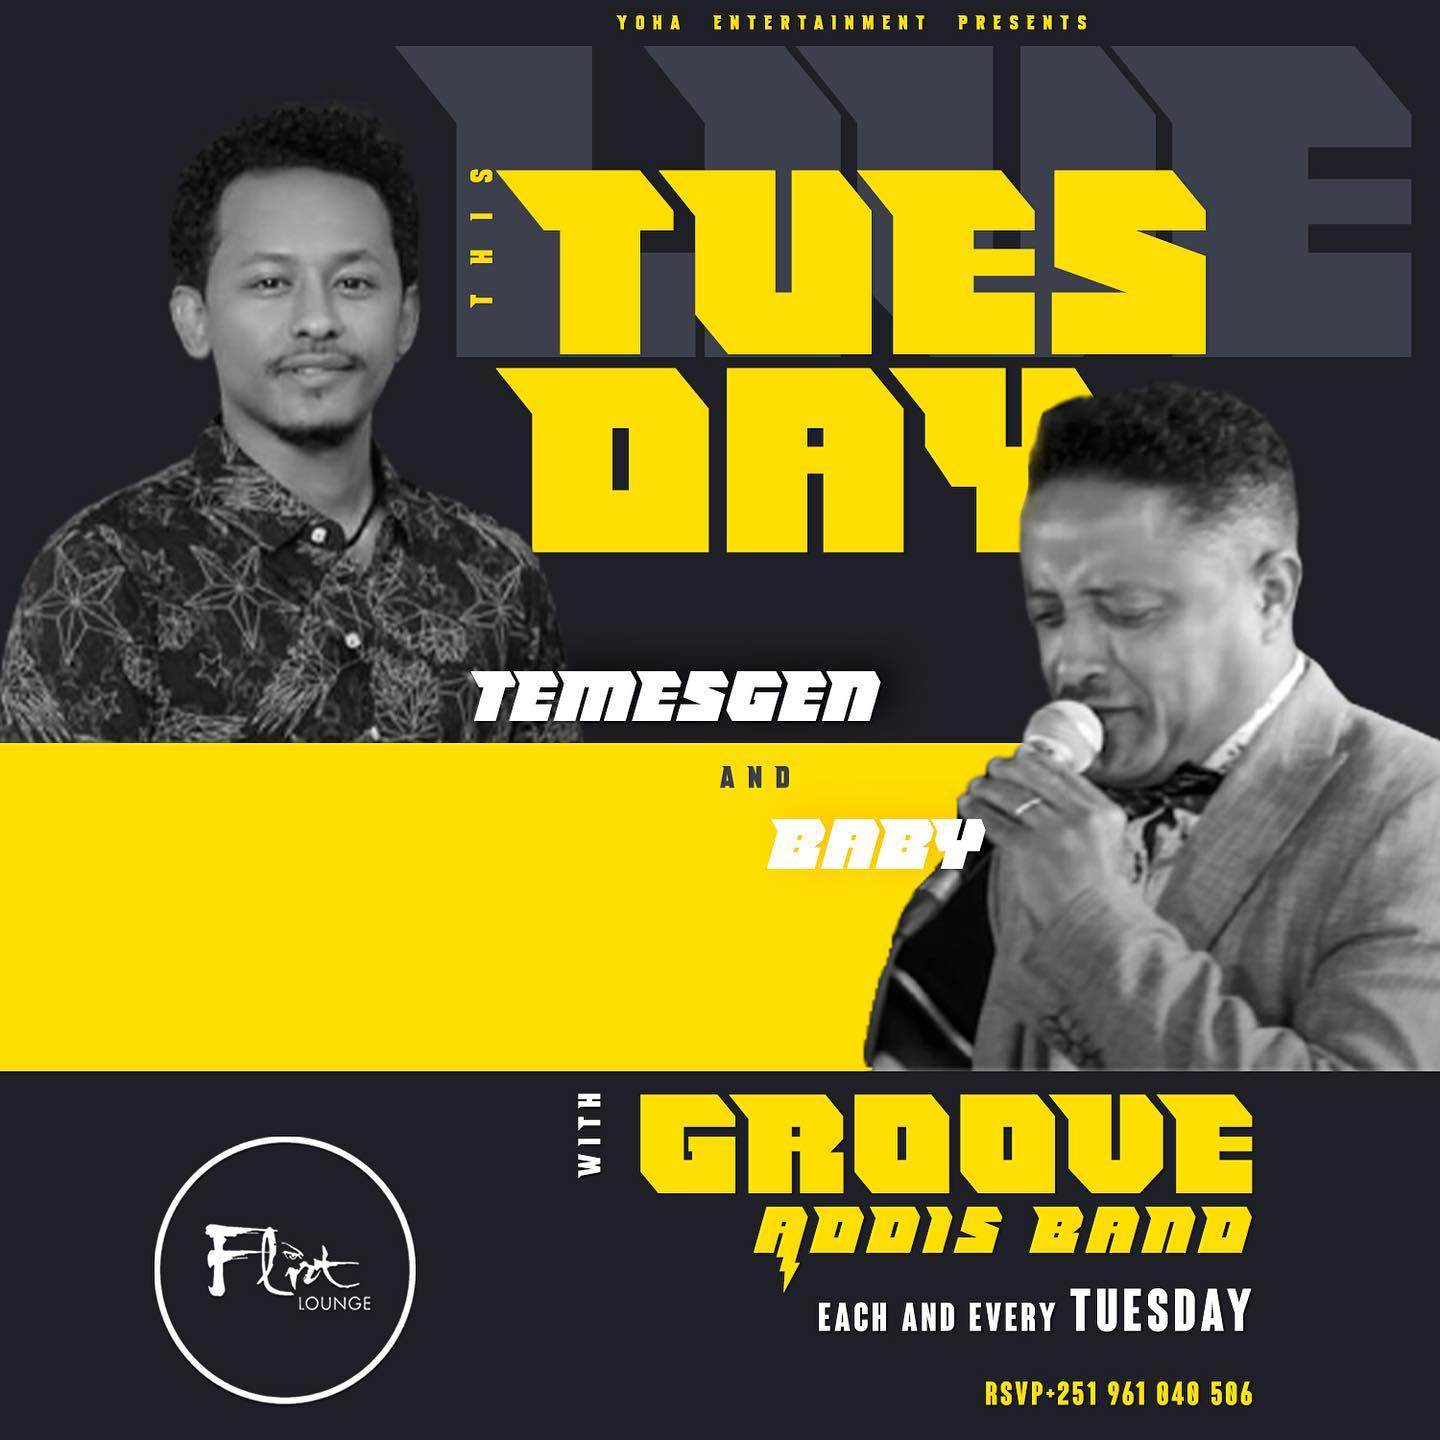 Tuesday with Groove Addis band